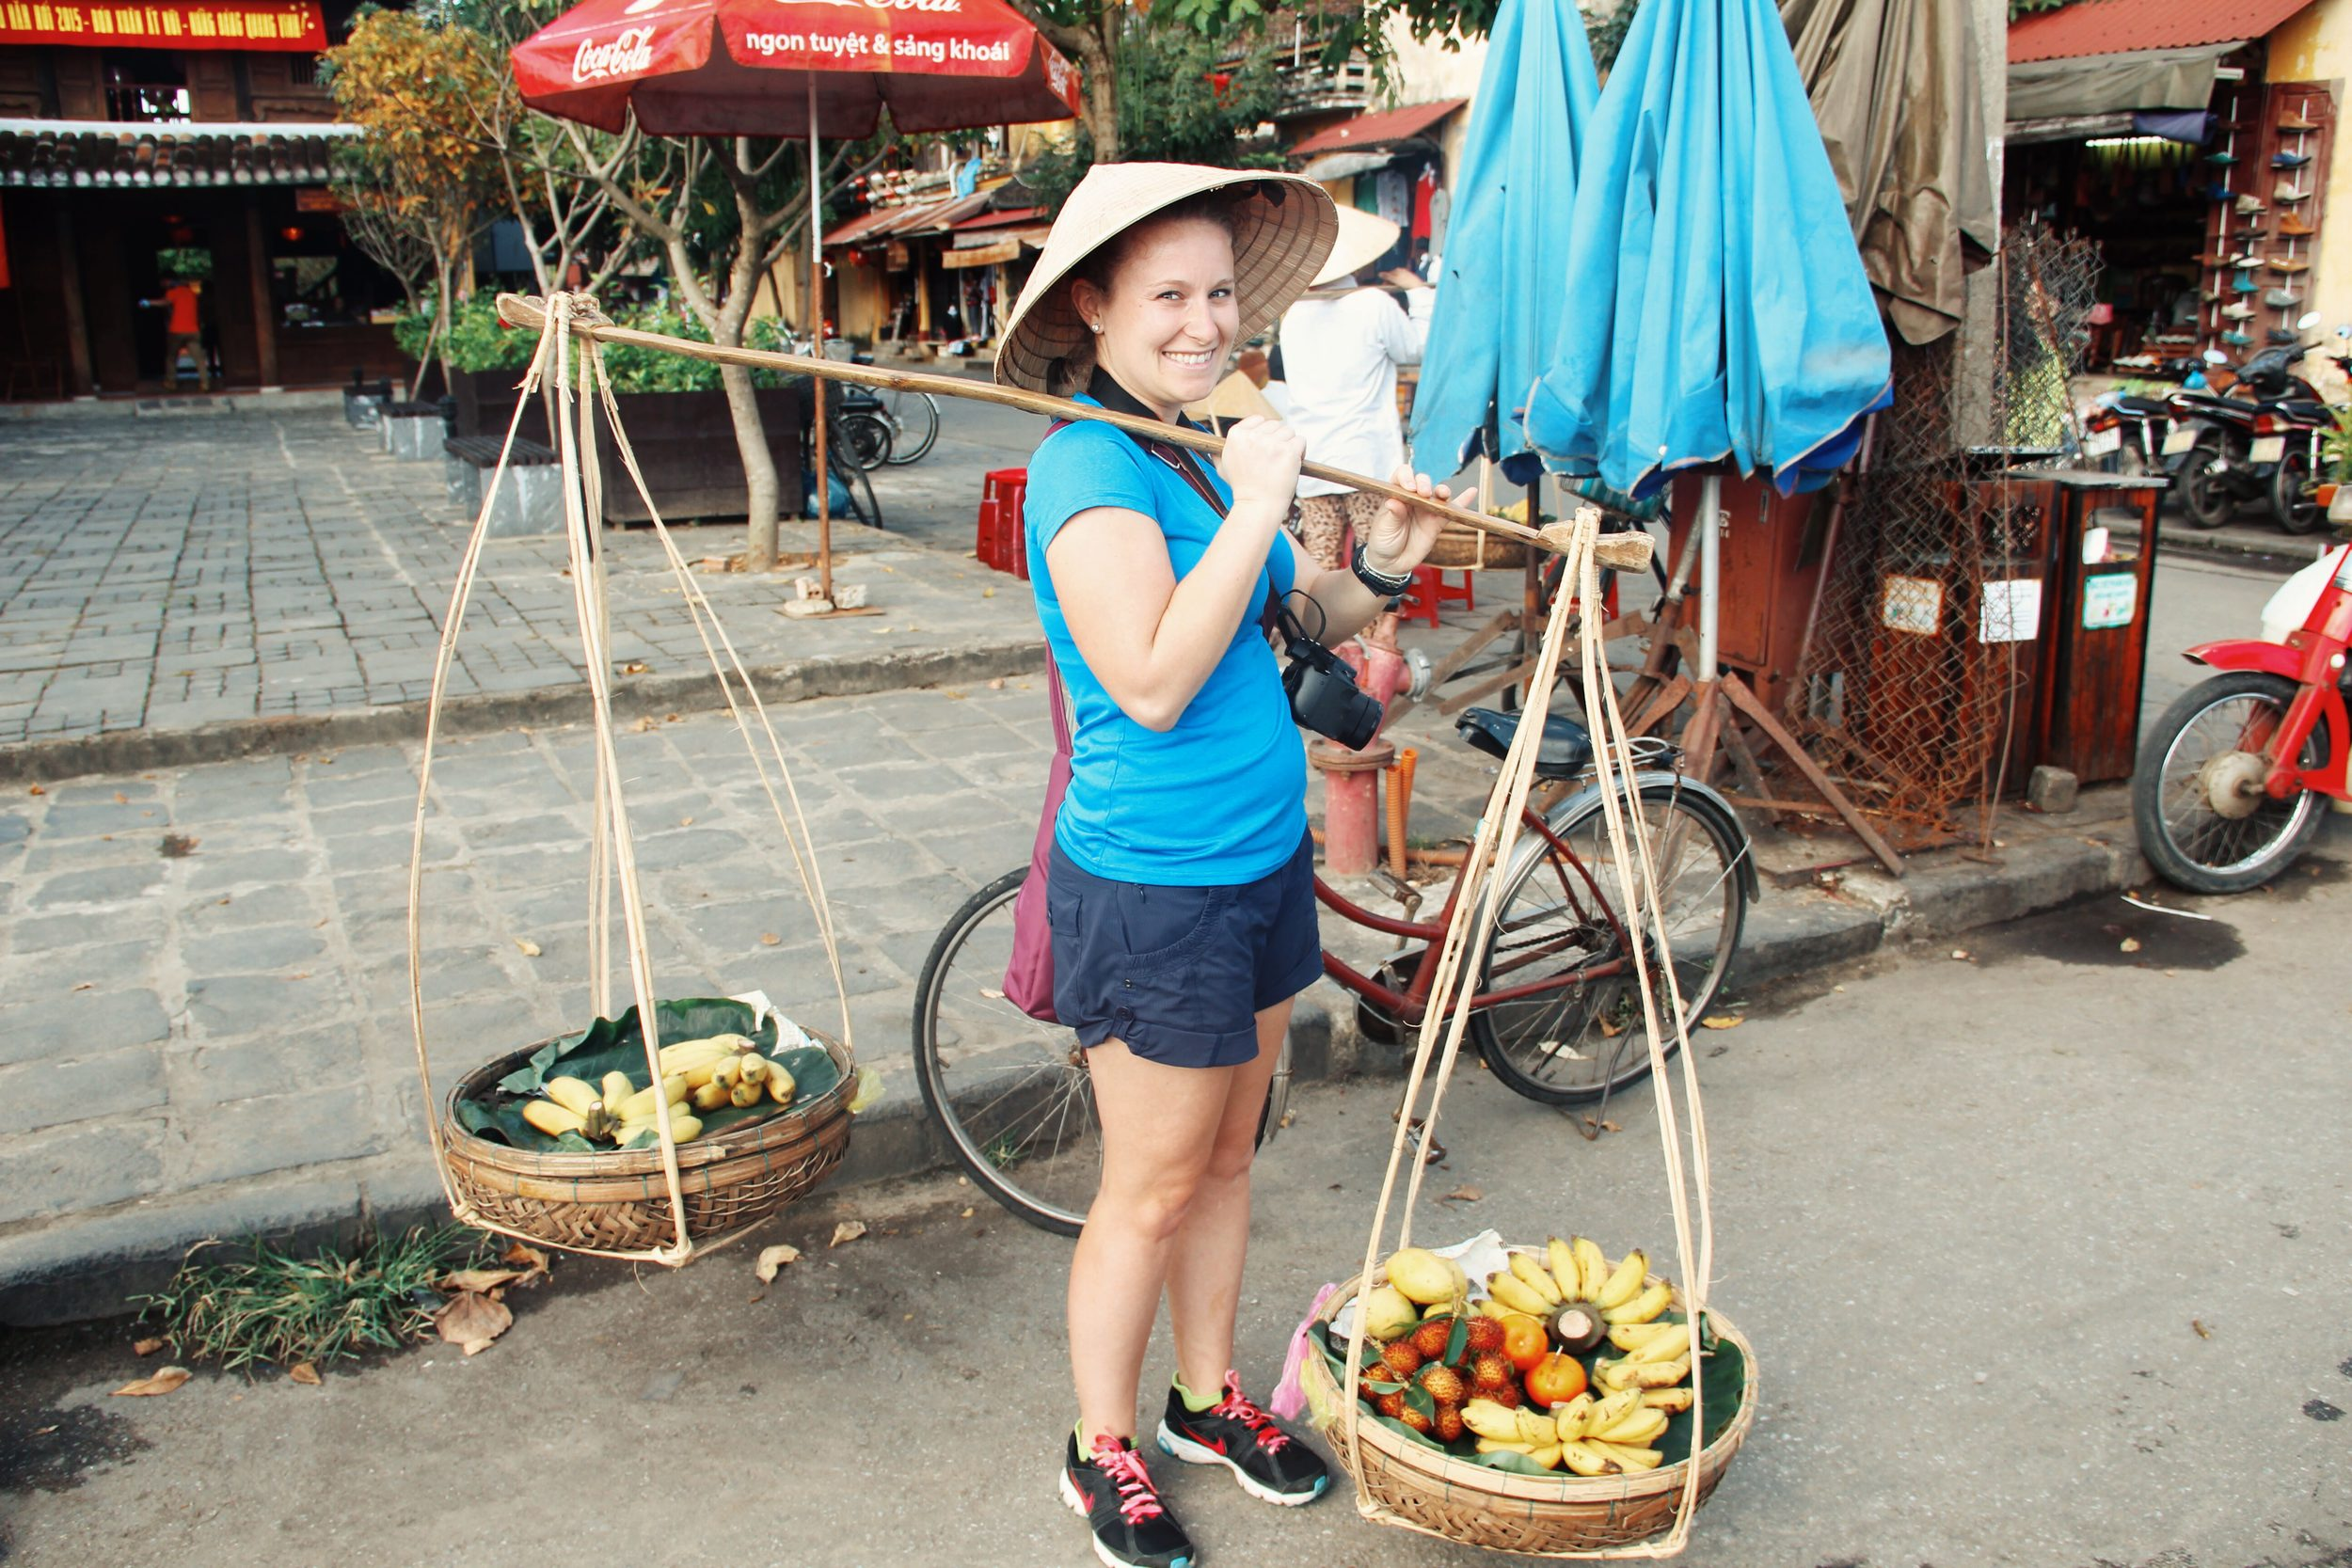 Getting authentic in Hoi An's market